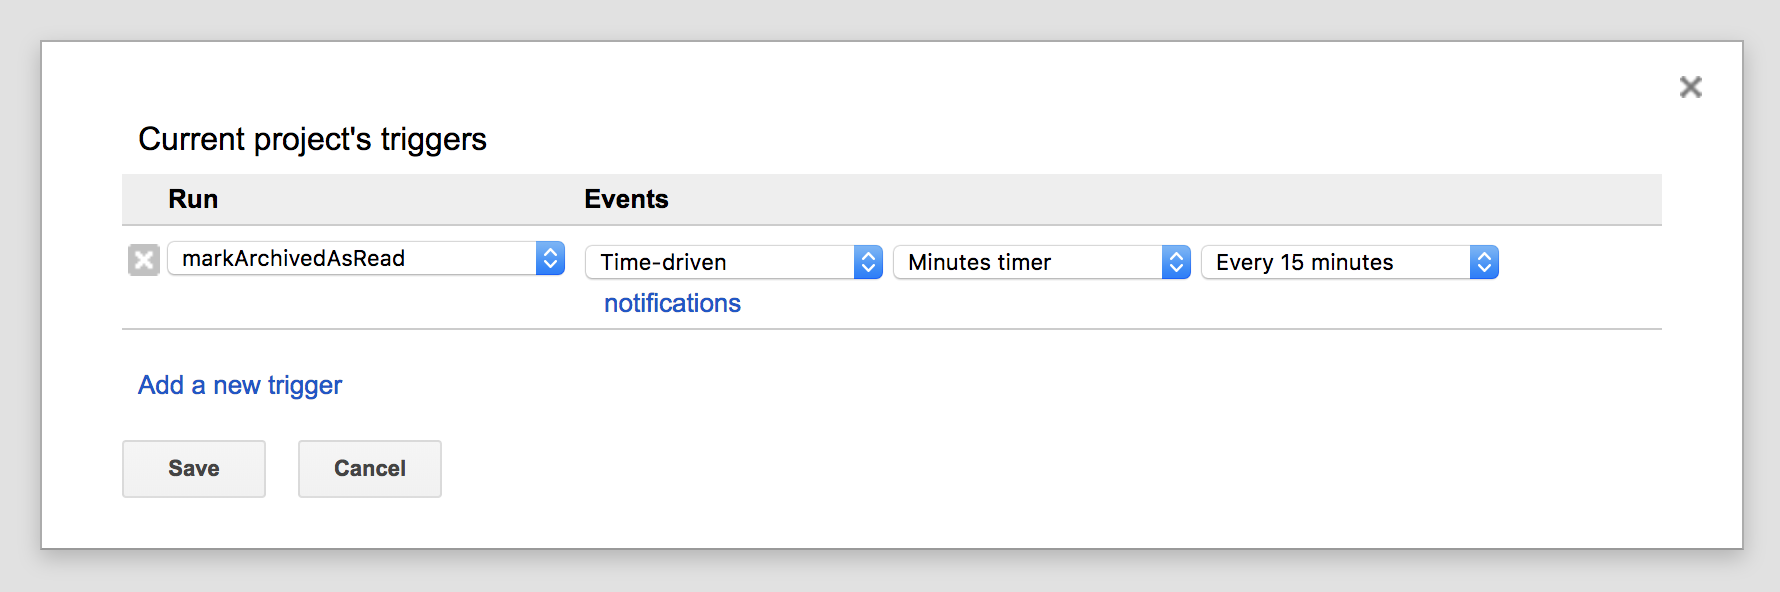 how to get to archived emails in gmail